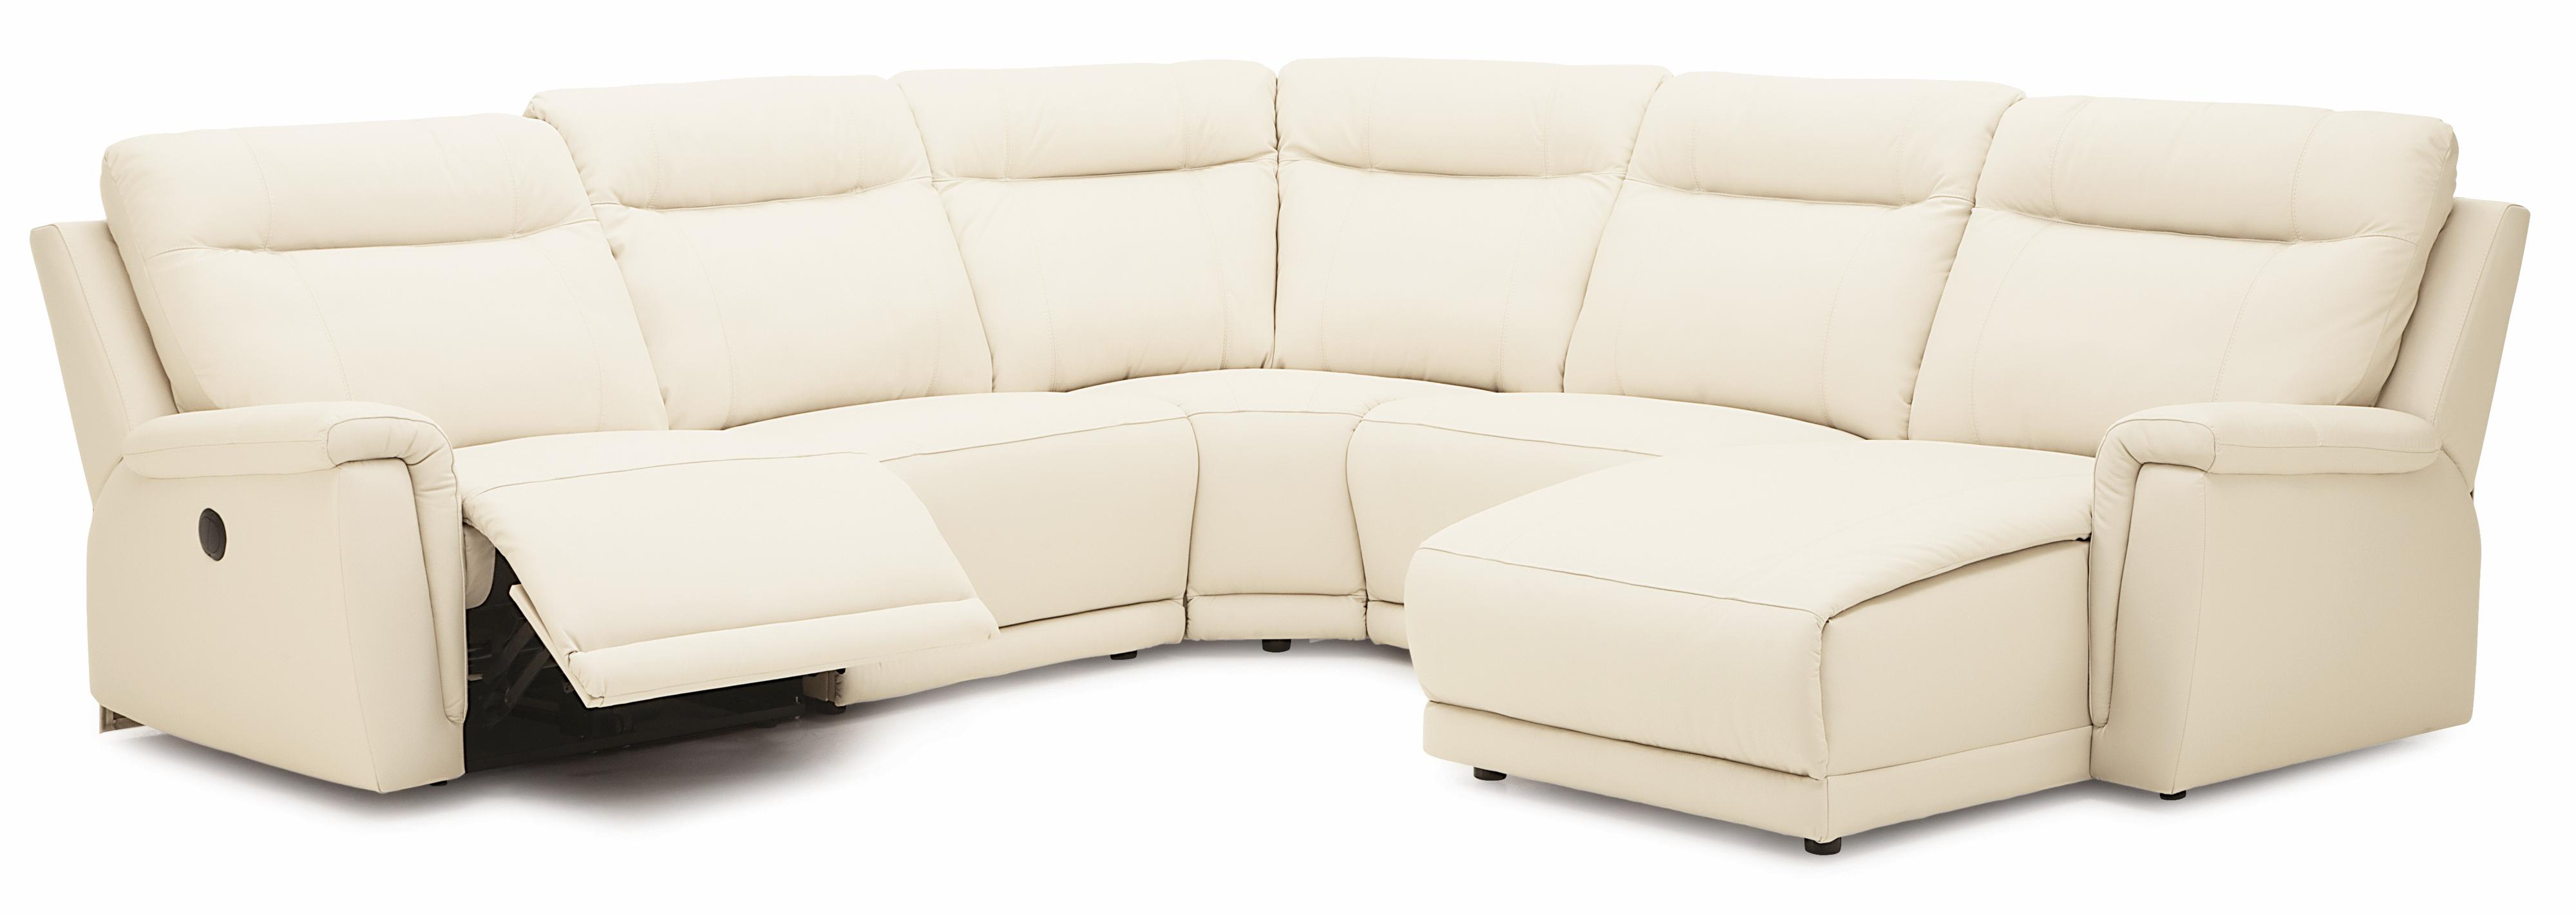 RHF Sectional w/ Chaise